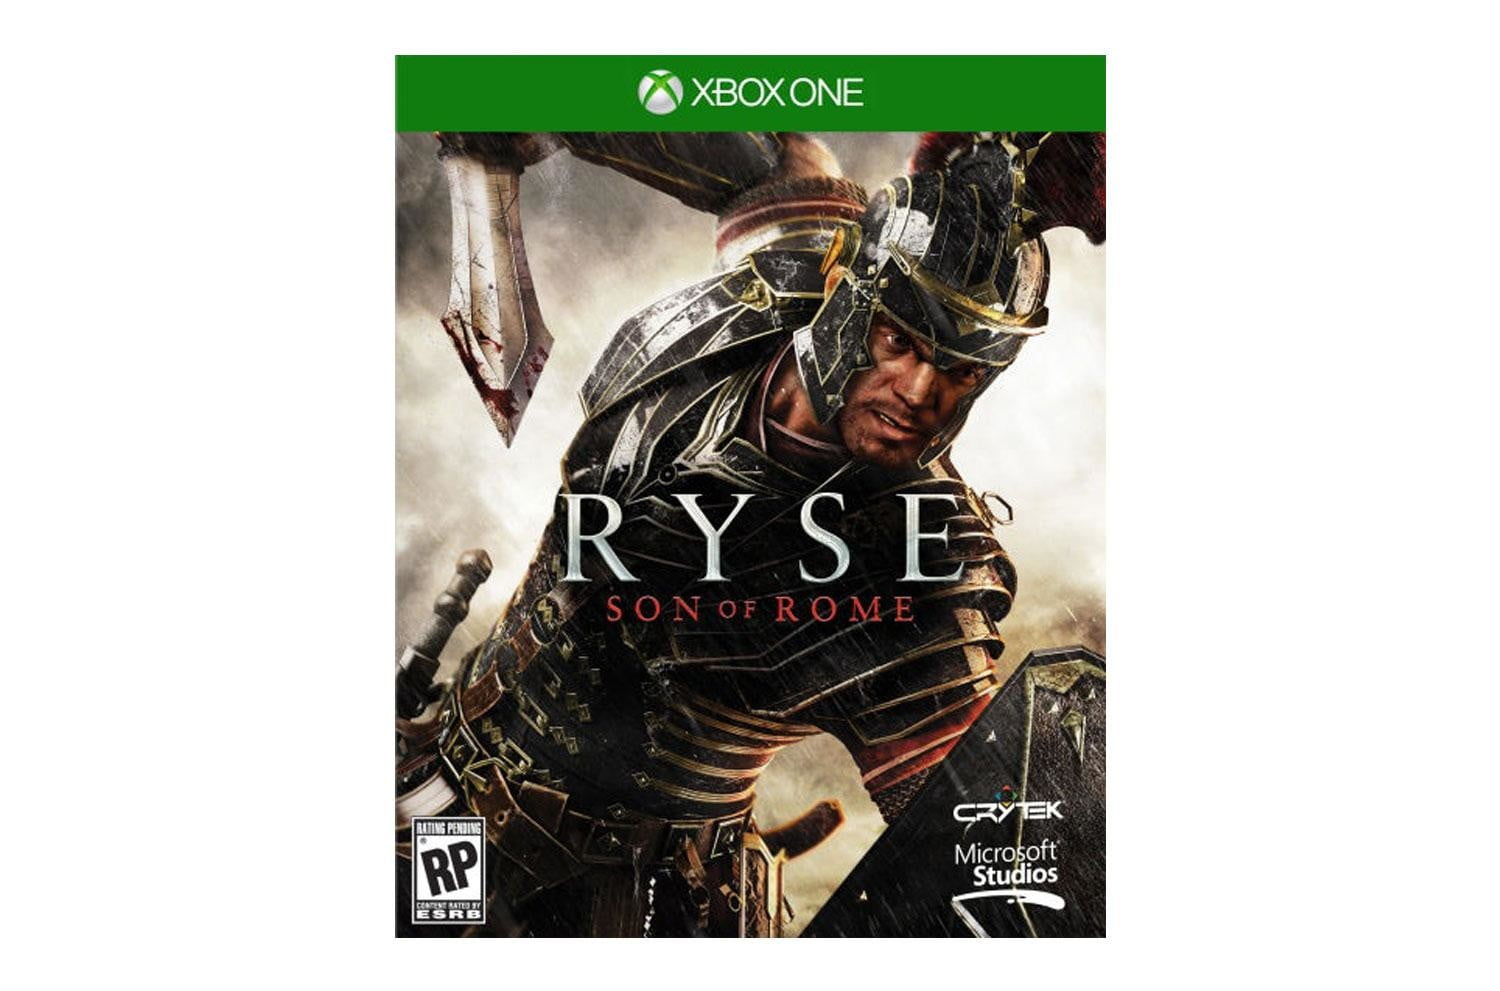 Ryse-Son-of-Rome-cover-art